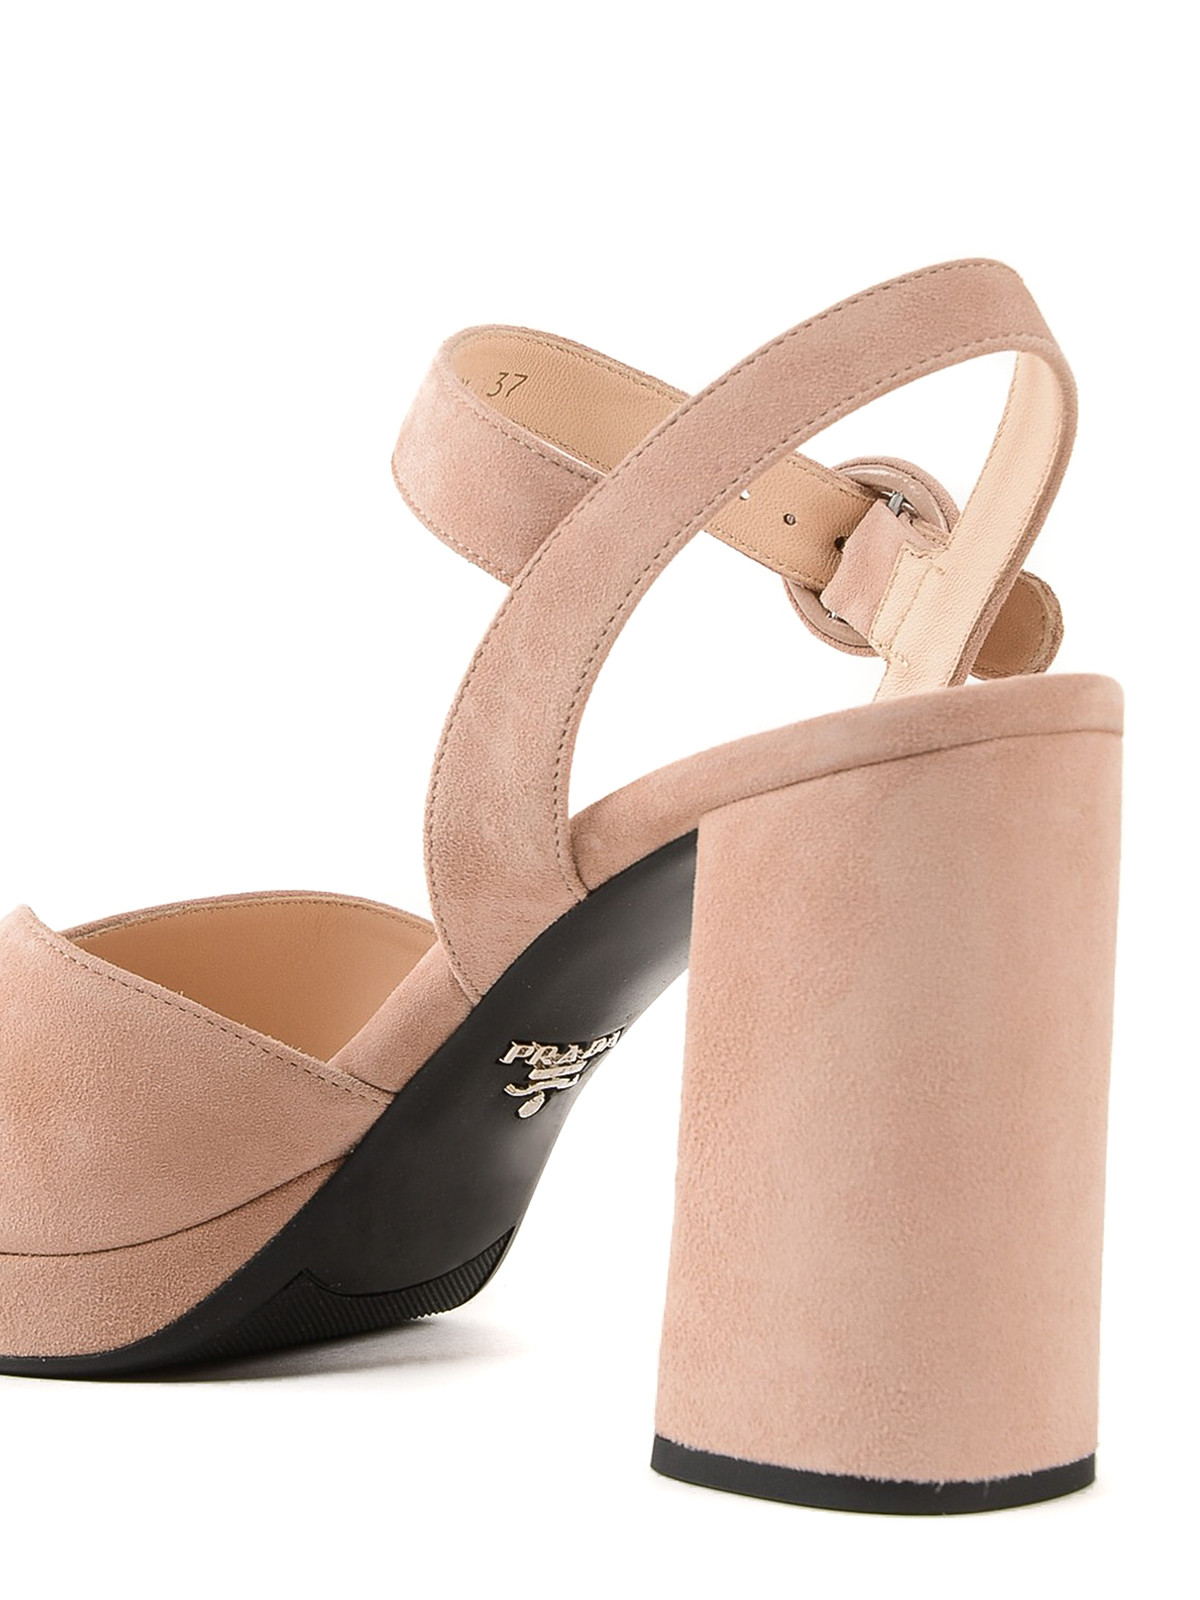 best sneakers new styles good quality Prada - Light pink suede platform sandals - sandals - 1XP36A008 A48